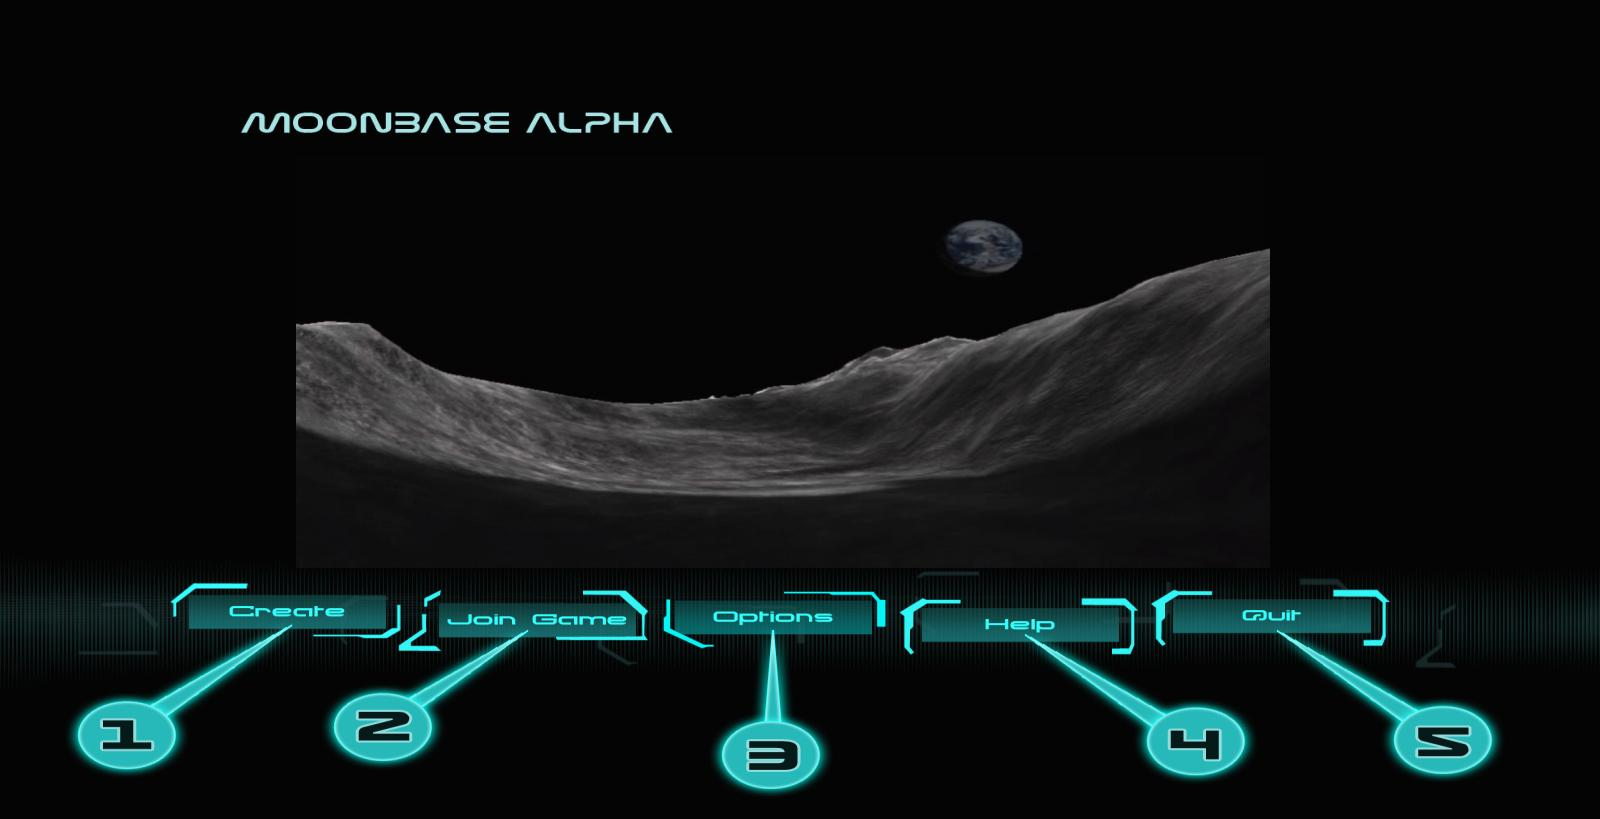 MAIN MENU After launching Moonbase Alpha you are brought to the main menu screen.